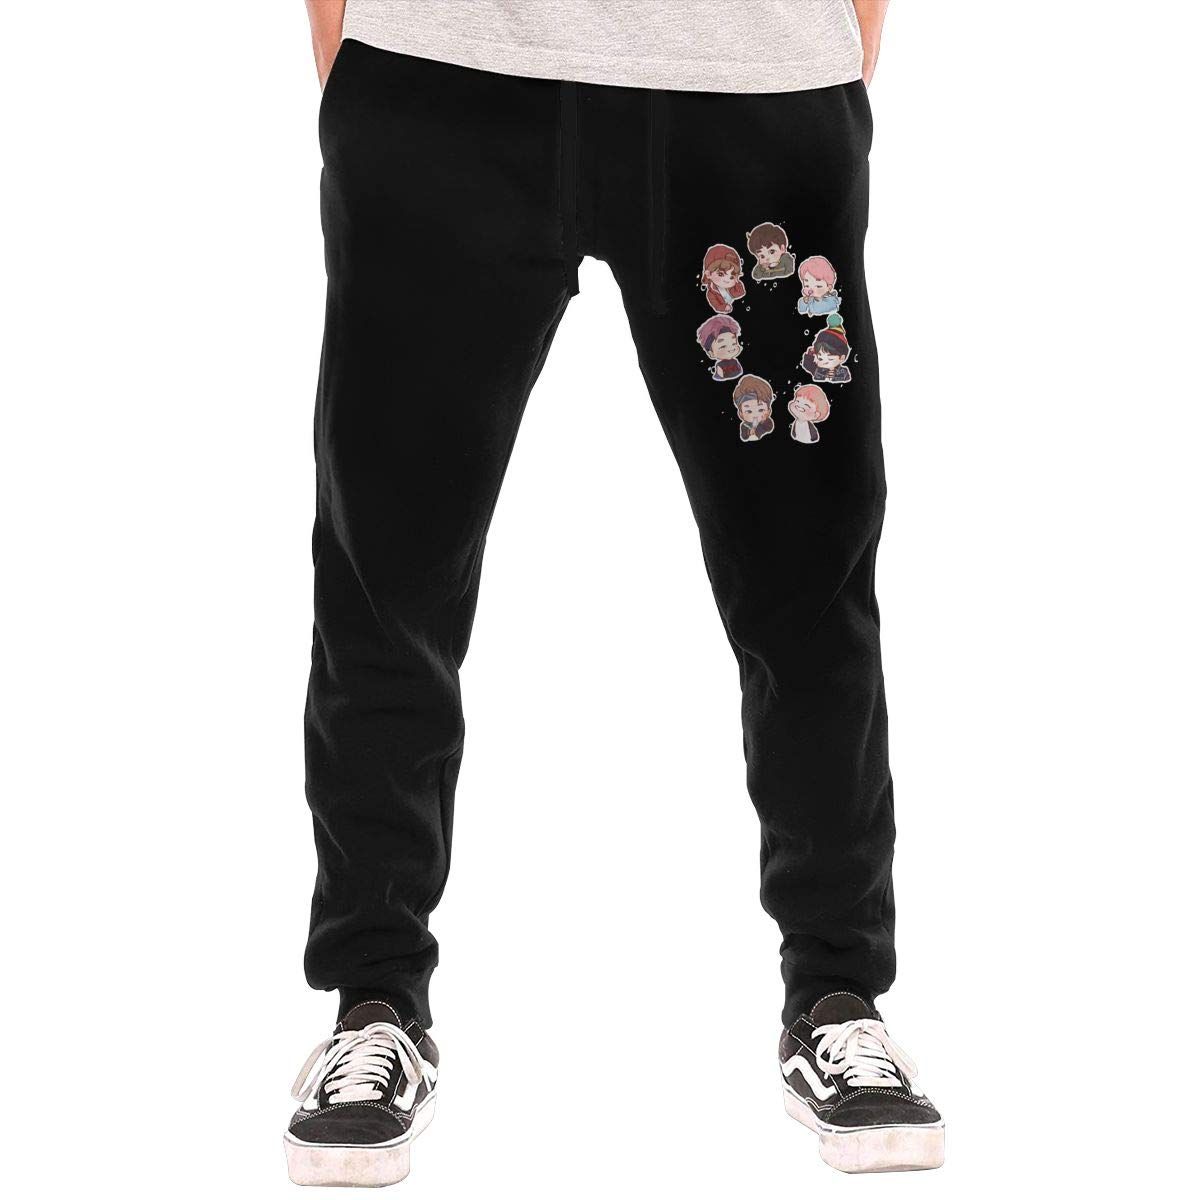 Kinggo Man Personalized BTS 7 Menbers Cool with Pockets Casual Pant Black